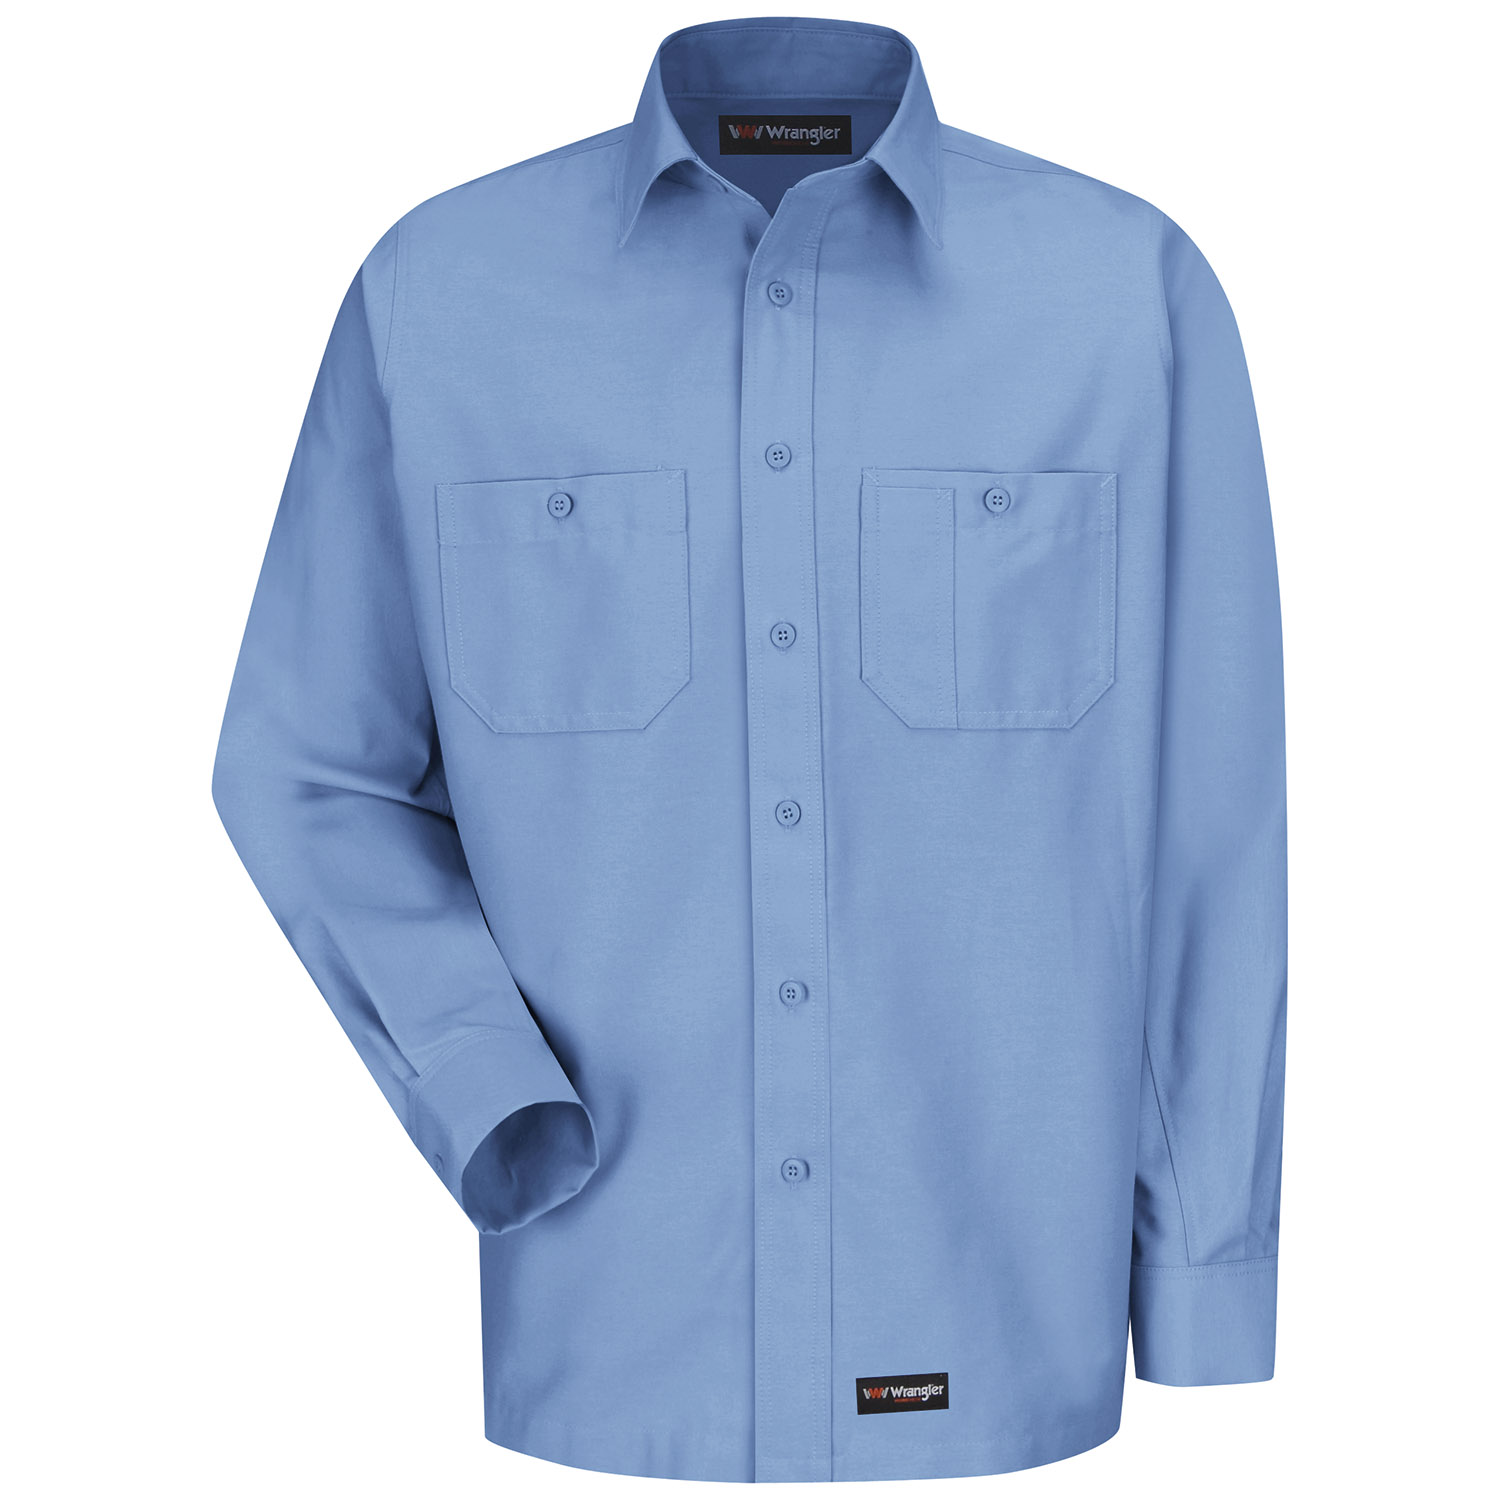 Wrangler Workwear Long Sleeve Shirt